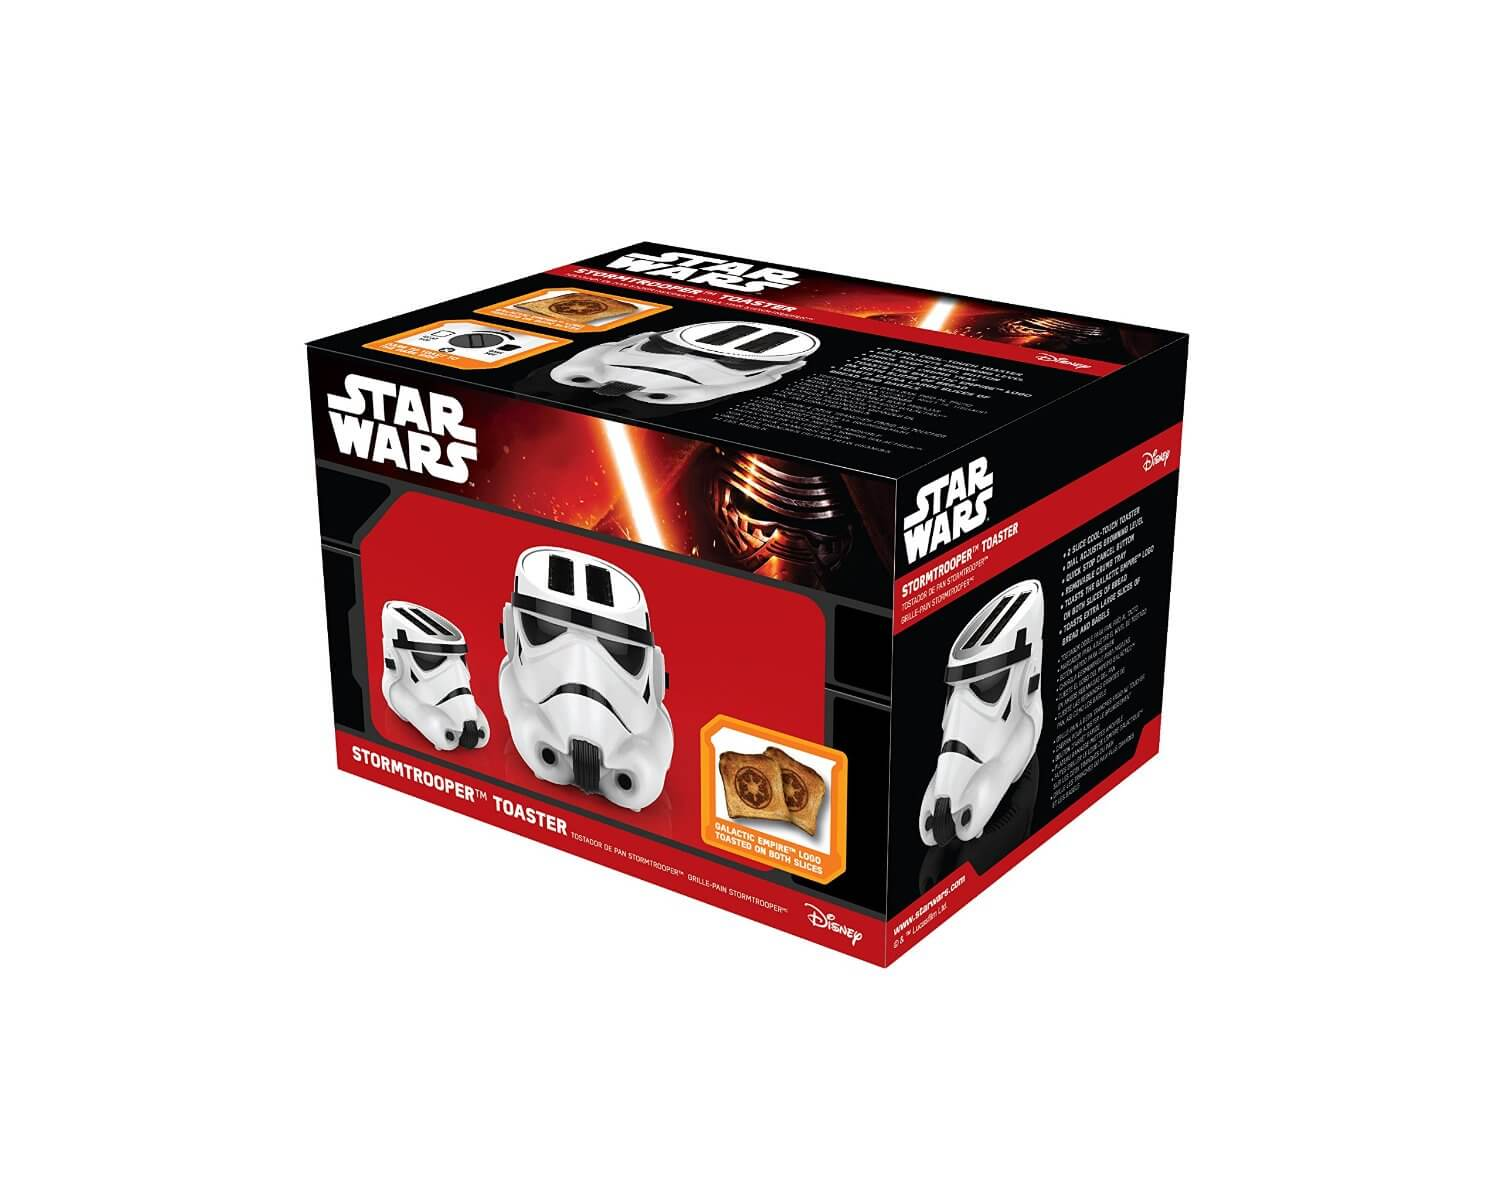 star wars stormtrooper toaster 6 (1)